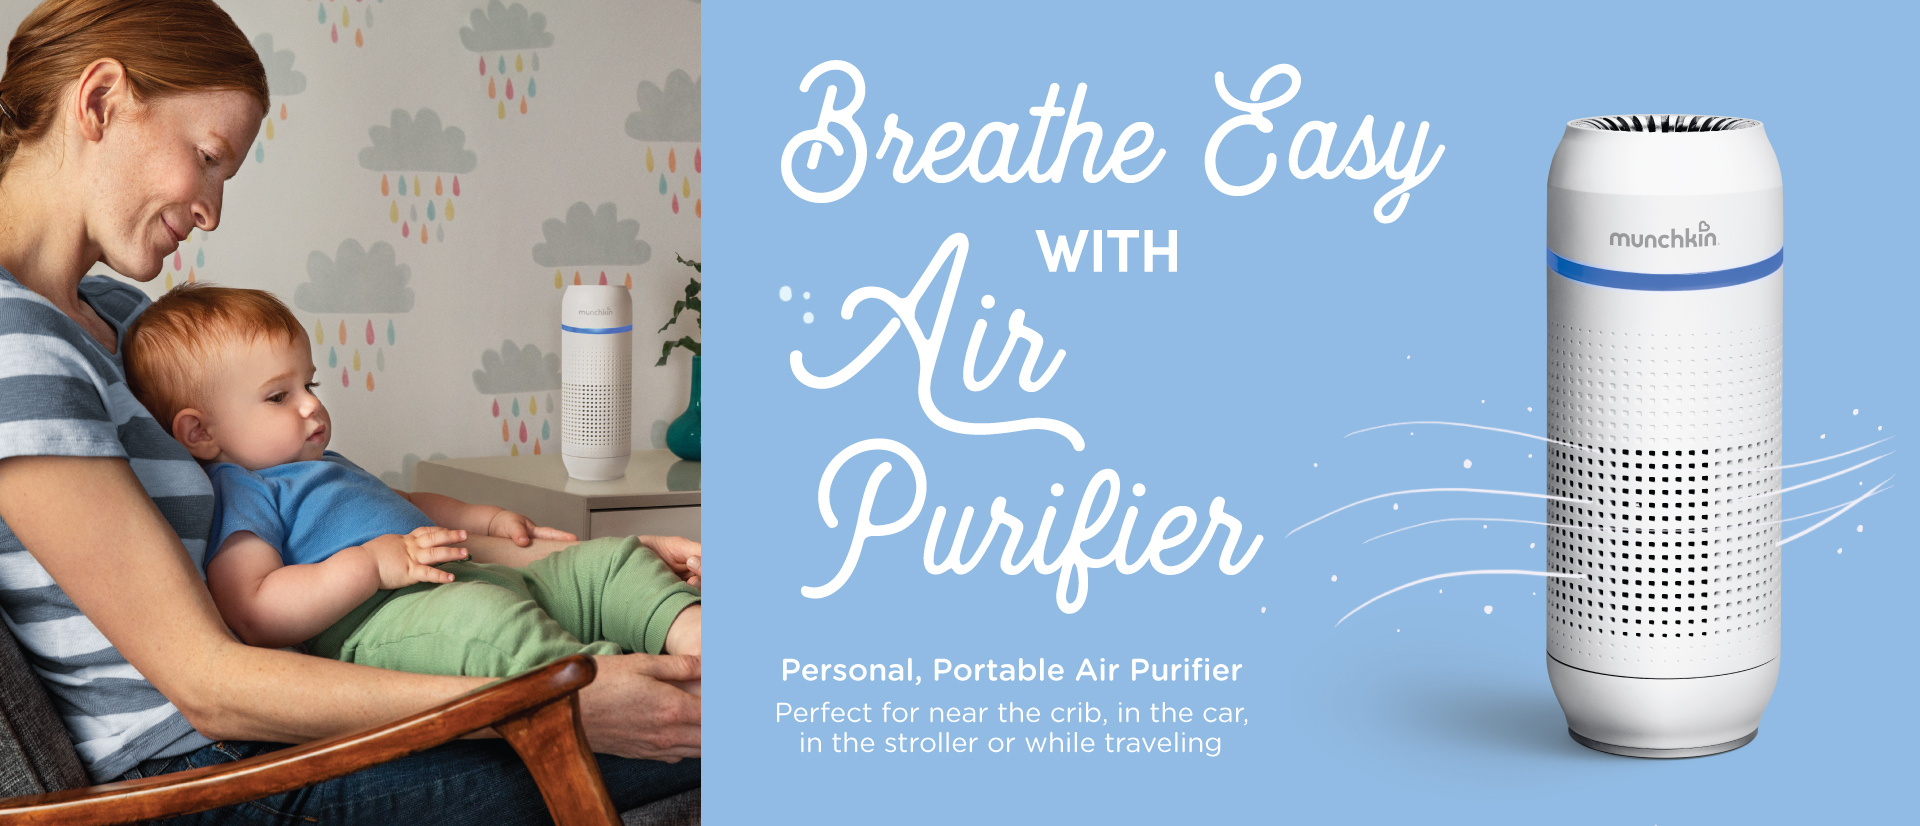 Breathe Easy with Air Purifier